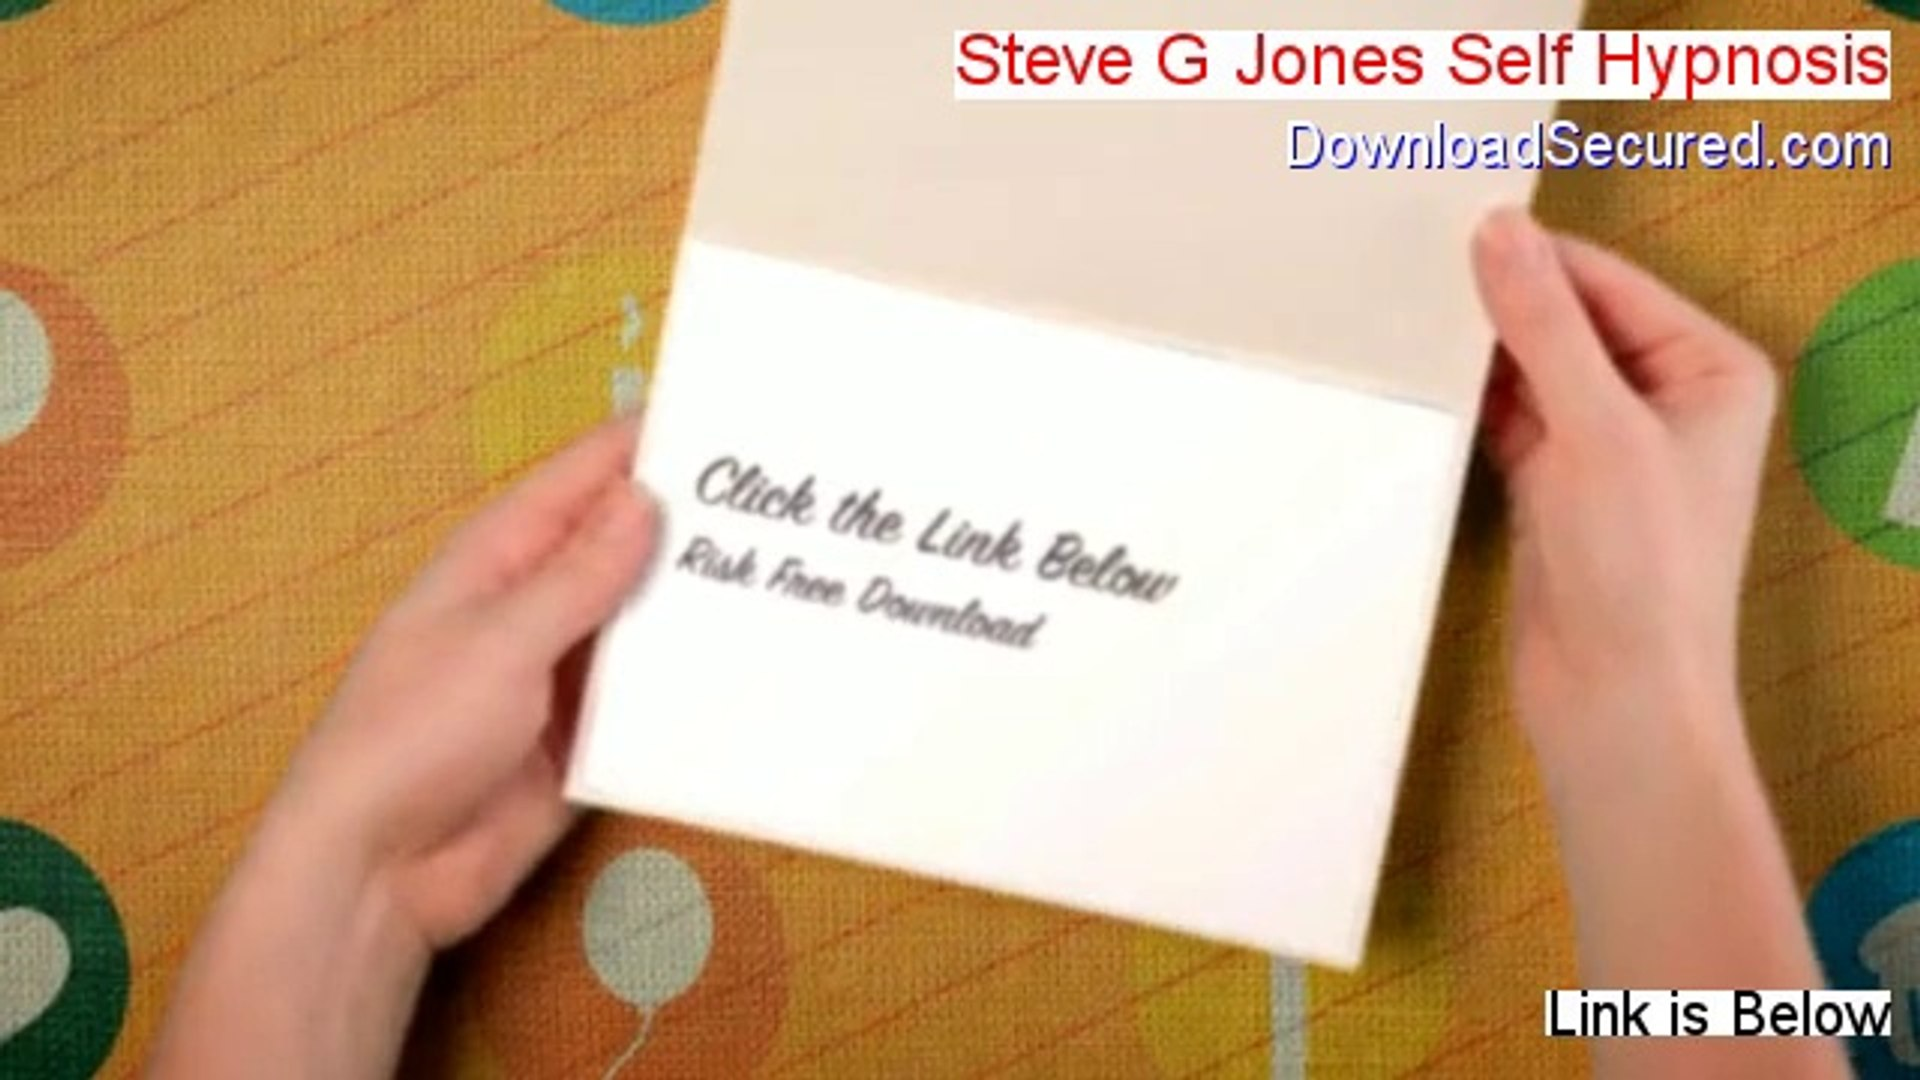 Steve G Jones Self Hypnosis Free Download - Download Now